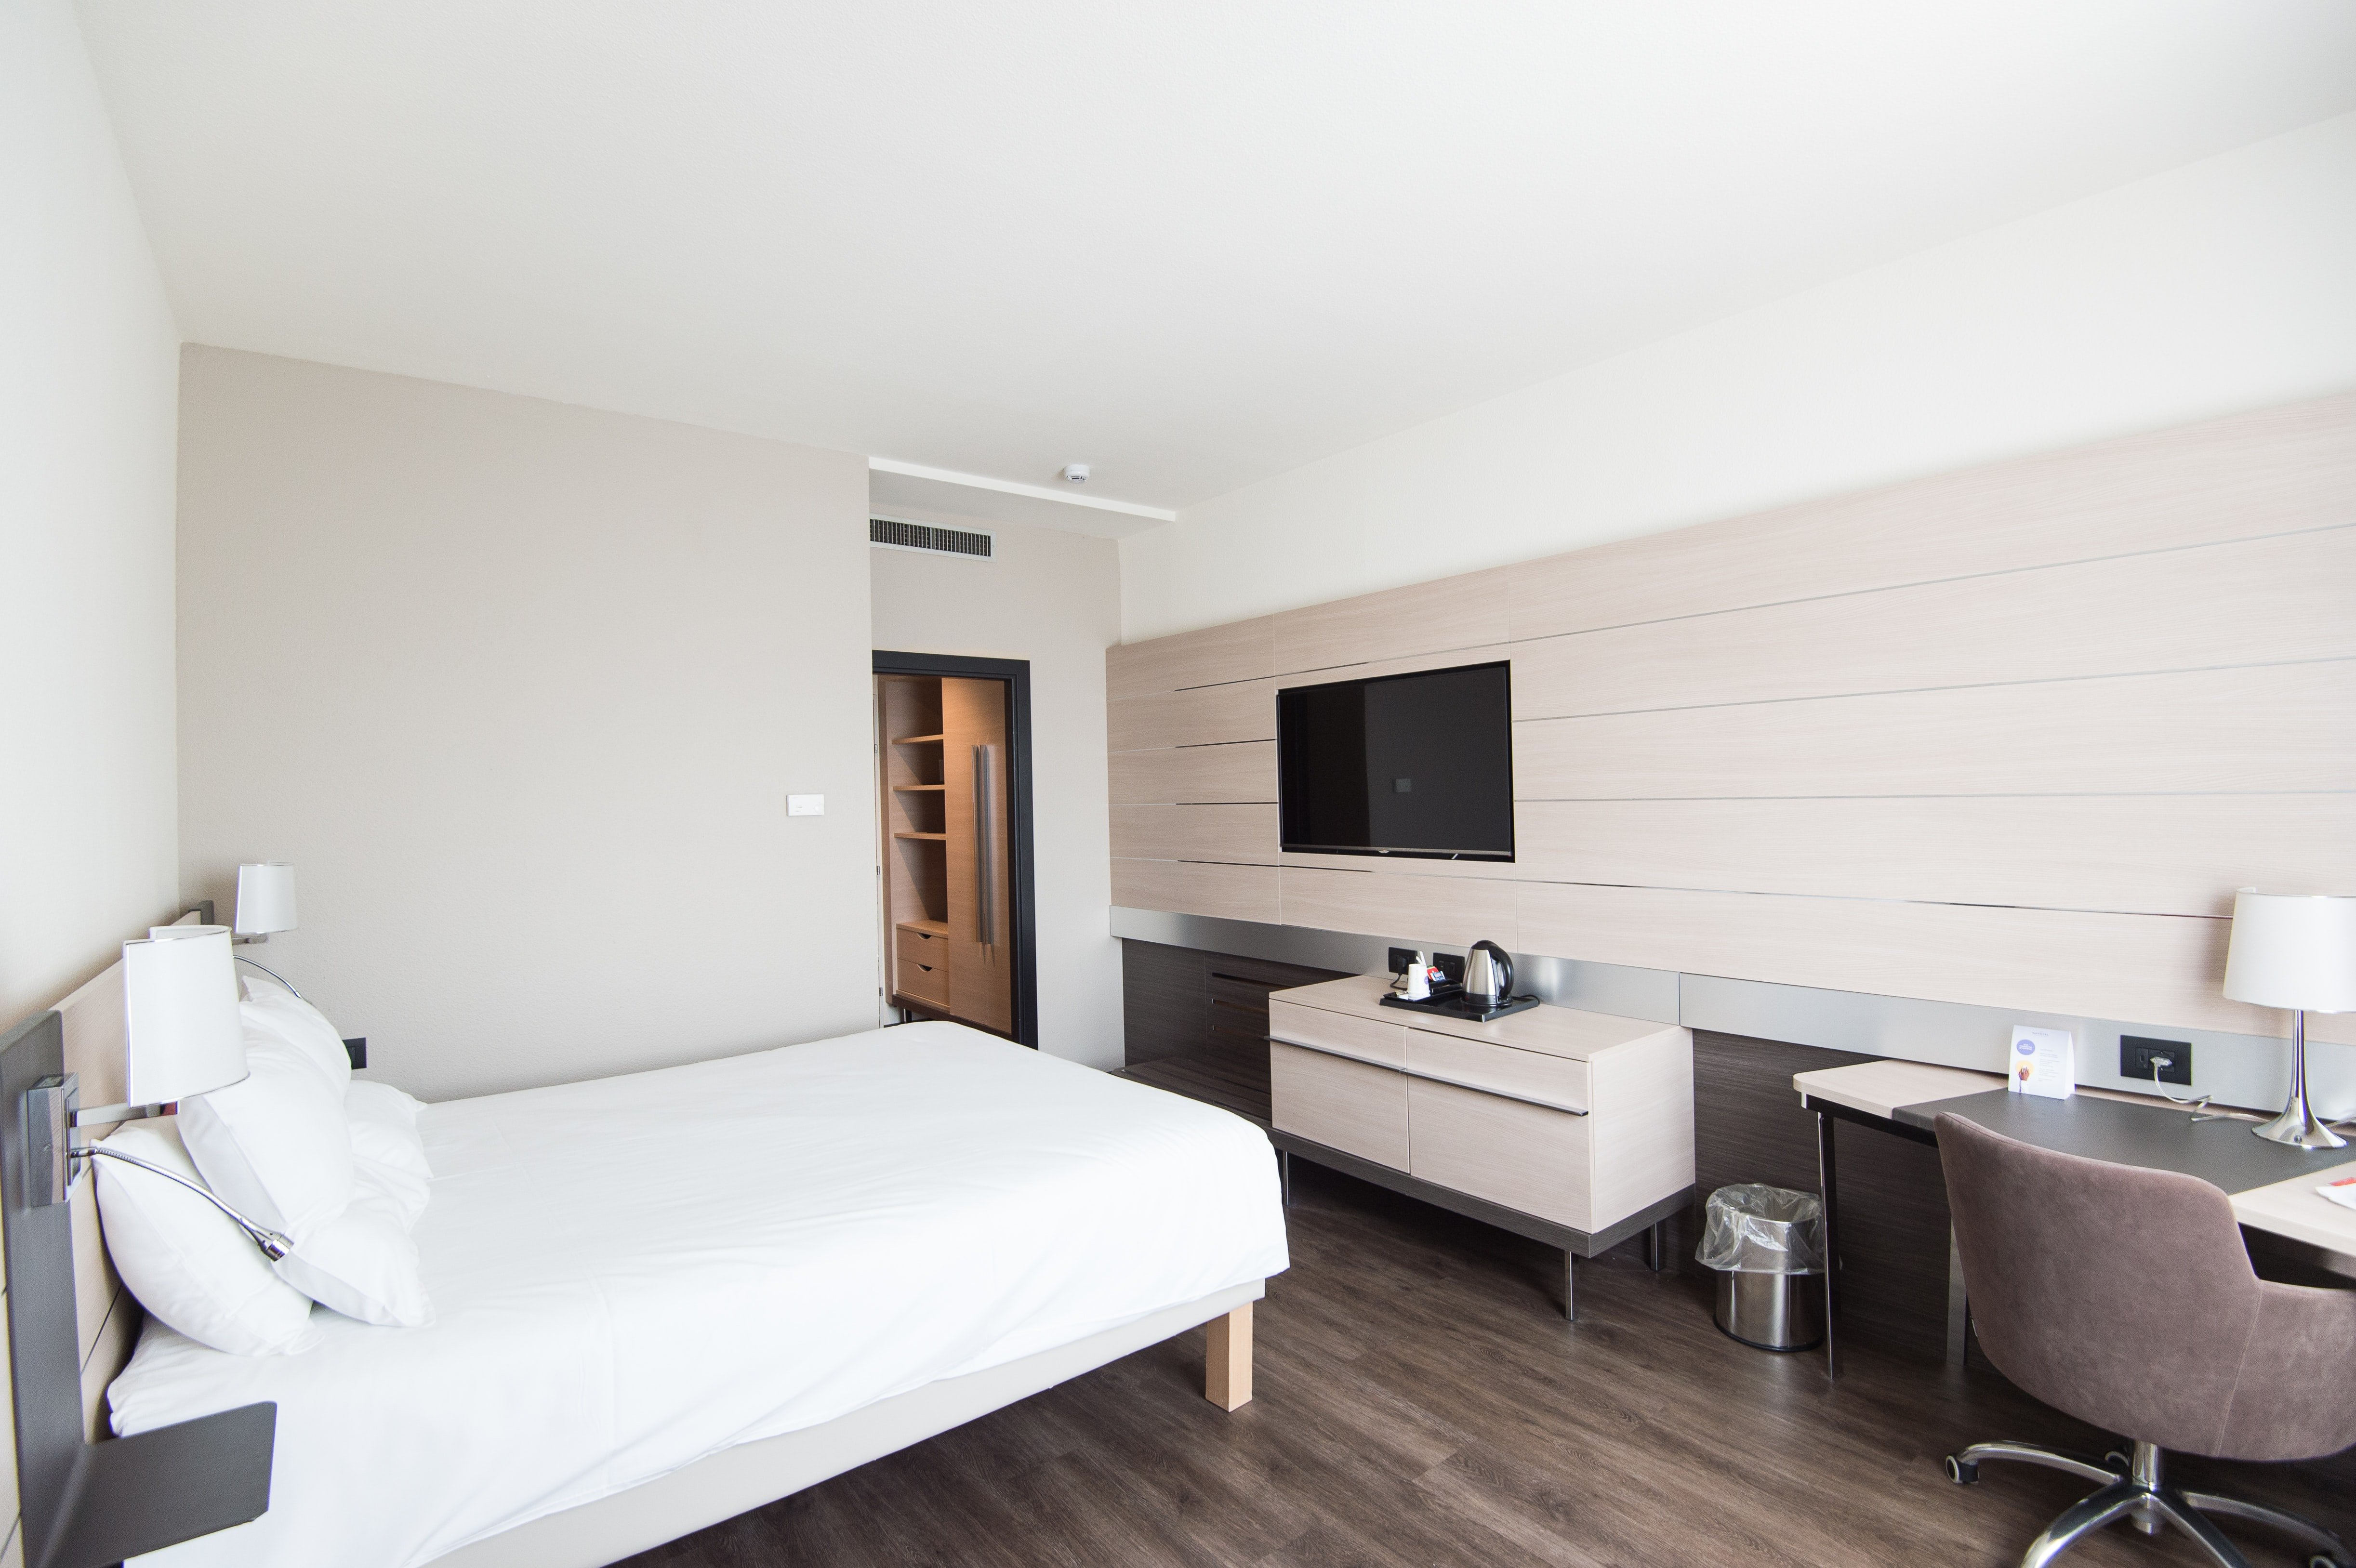 6 Key Challenges Facing Hotel Housekeeping Managers Today